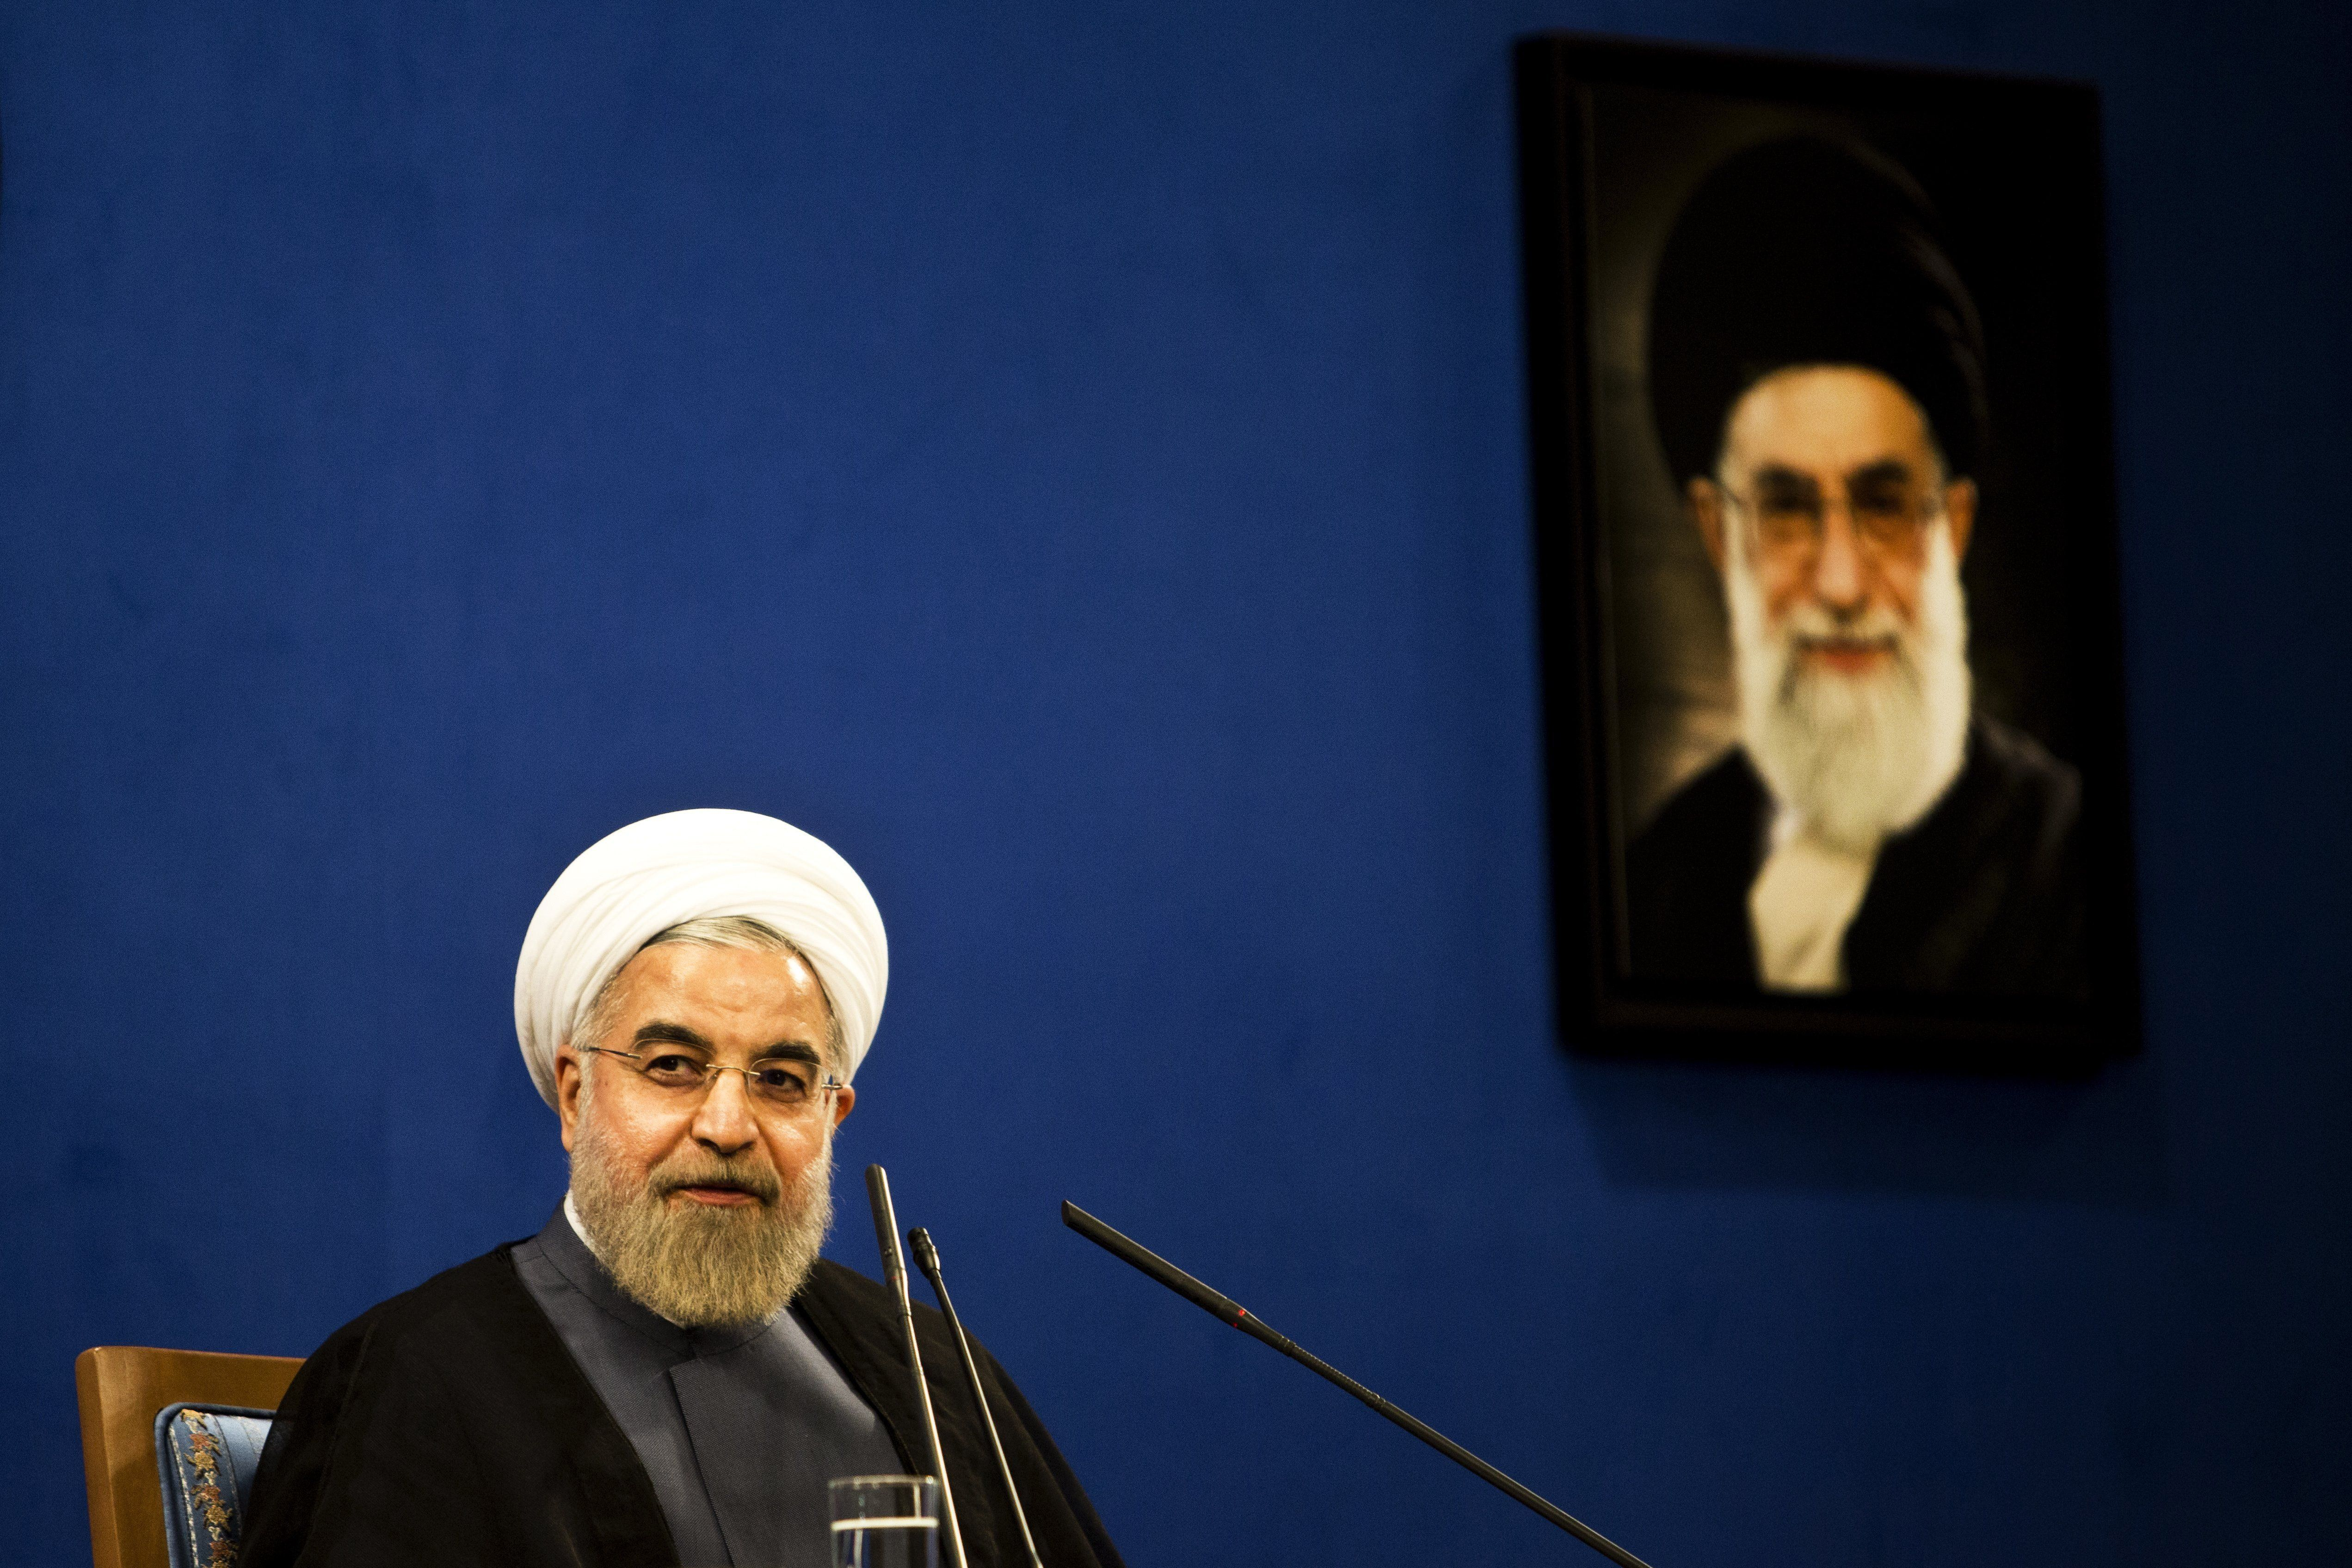 Iranian President Hassan Rouhani listens, sitting next to a portrait of supreme leader Ayatollah Ali Khamenei (R), during a press conference in Tehran on June 13, 2015. There are still 'many differences over details' of a nuclear deal Iran and world powers are trying to conclude by June 30, Iranian President Hassan Rouhani said.  AFP PHOTO / BEHROUZ MEHRI        (Photo credit should read BEHROUZ MEHRI/AFP/Getty Images)